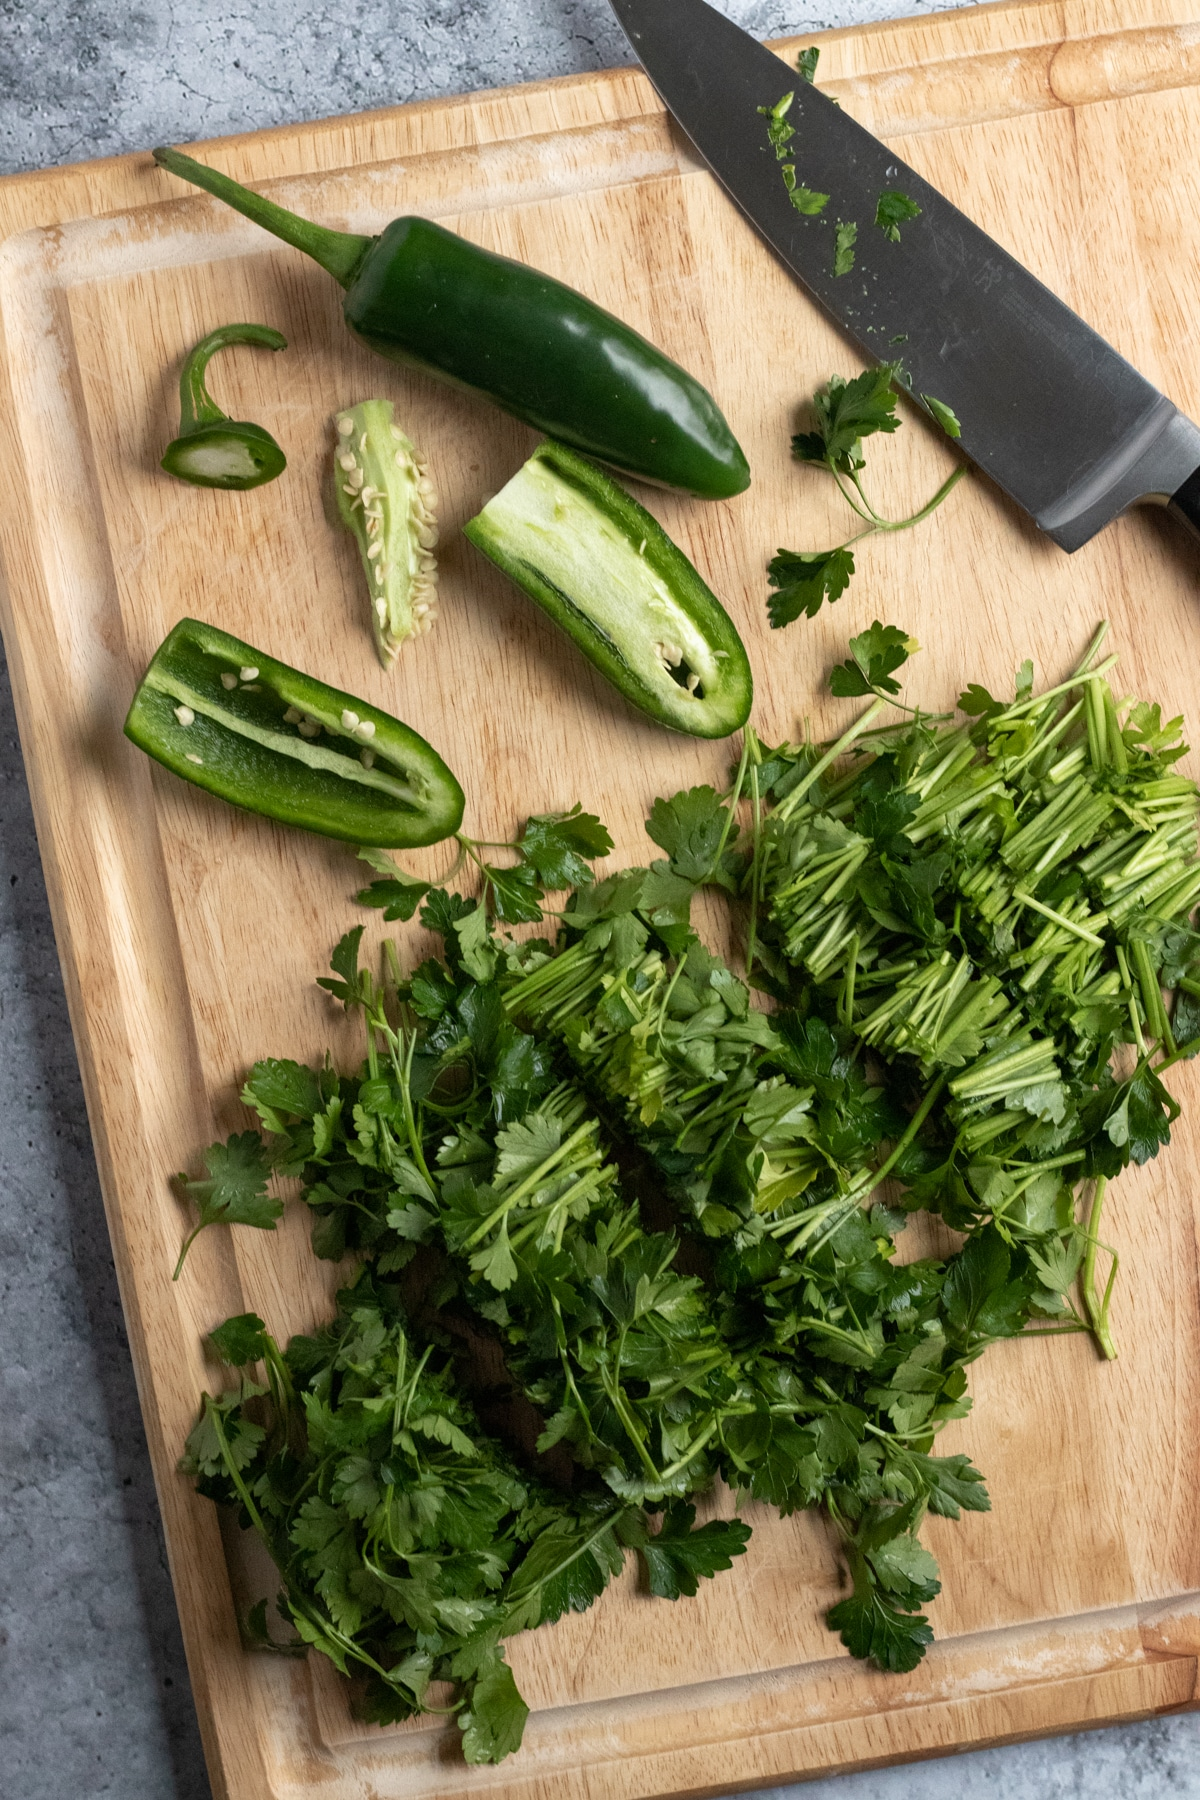 roughly chopped parsley and jalapeños on a cutting board